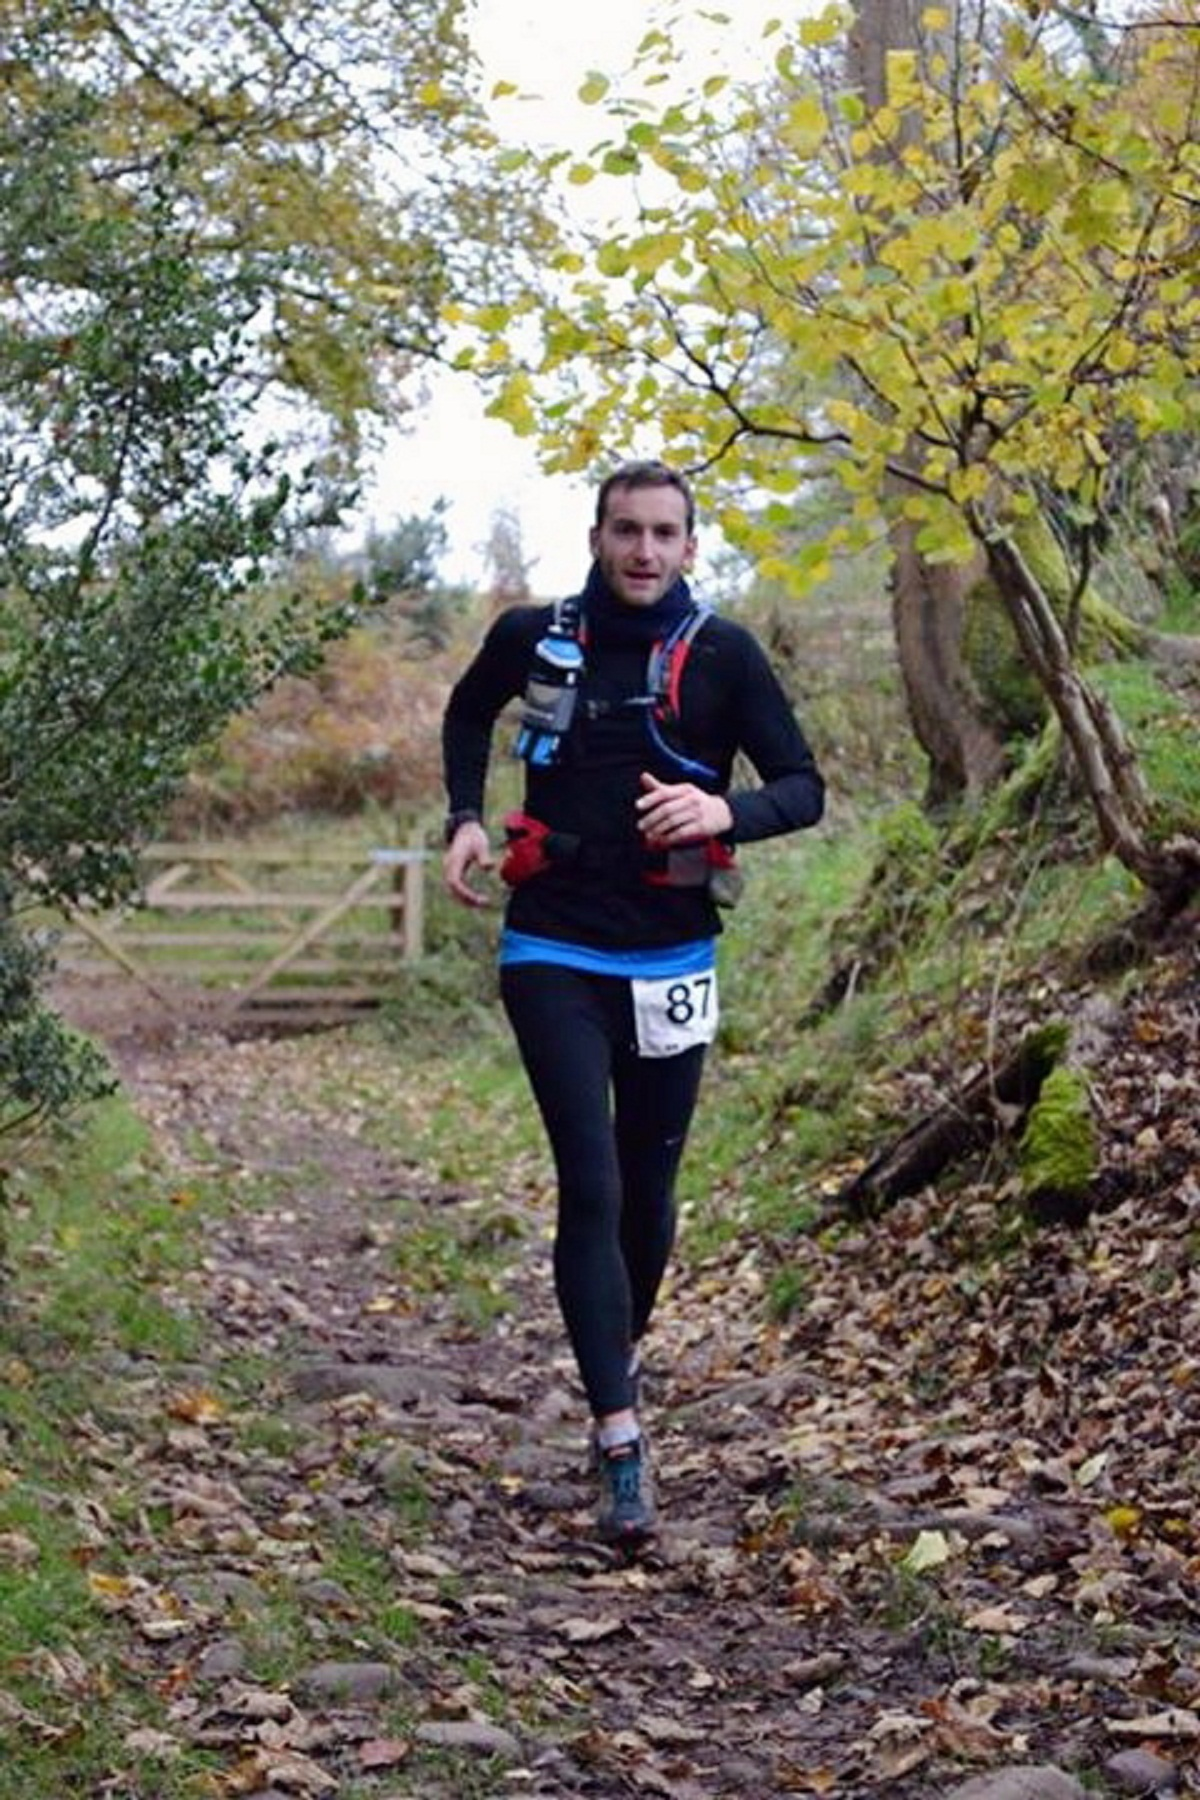 Neal Edmondson, from Pool-in-Wharfedale, will take on a gruelling 156-mile race